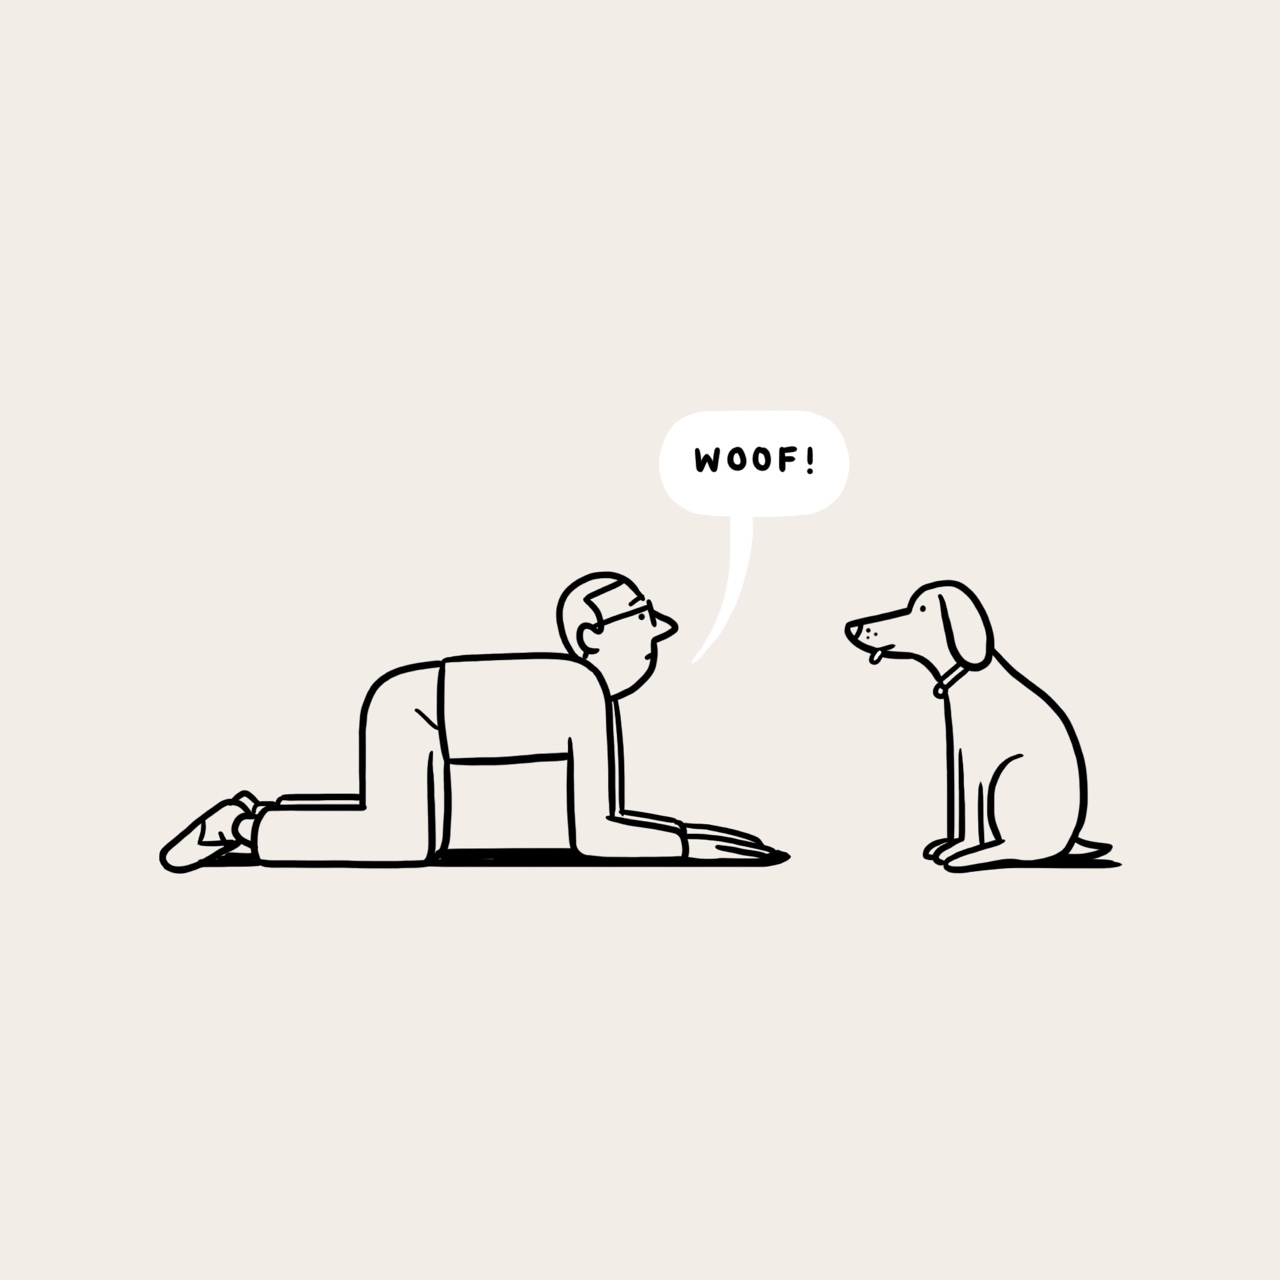 Le brillanti illustrazioni dell'artista Matt Blease | Collater.al 6